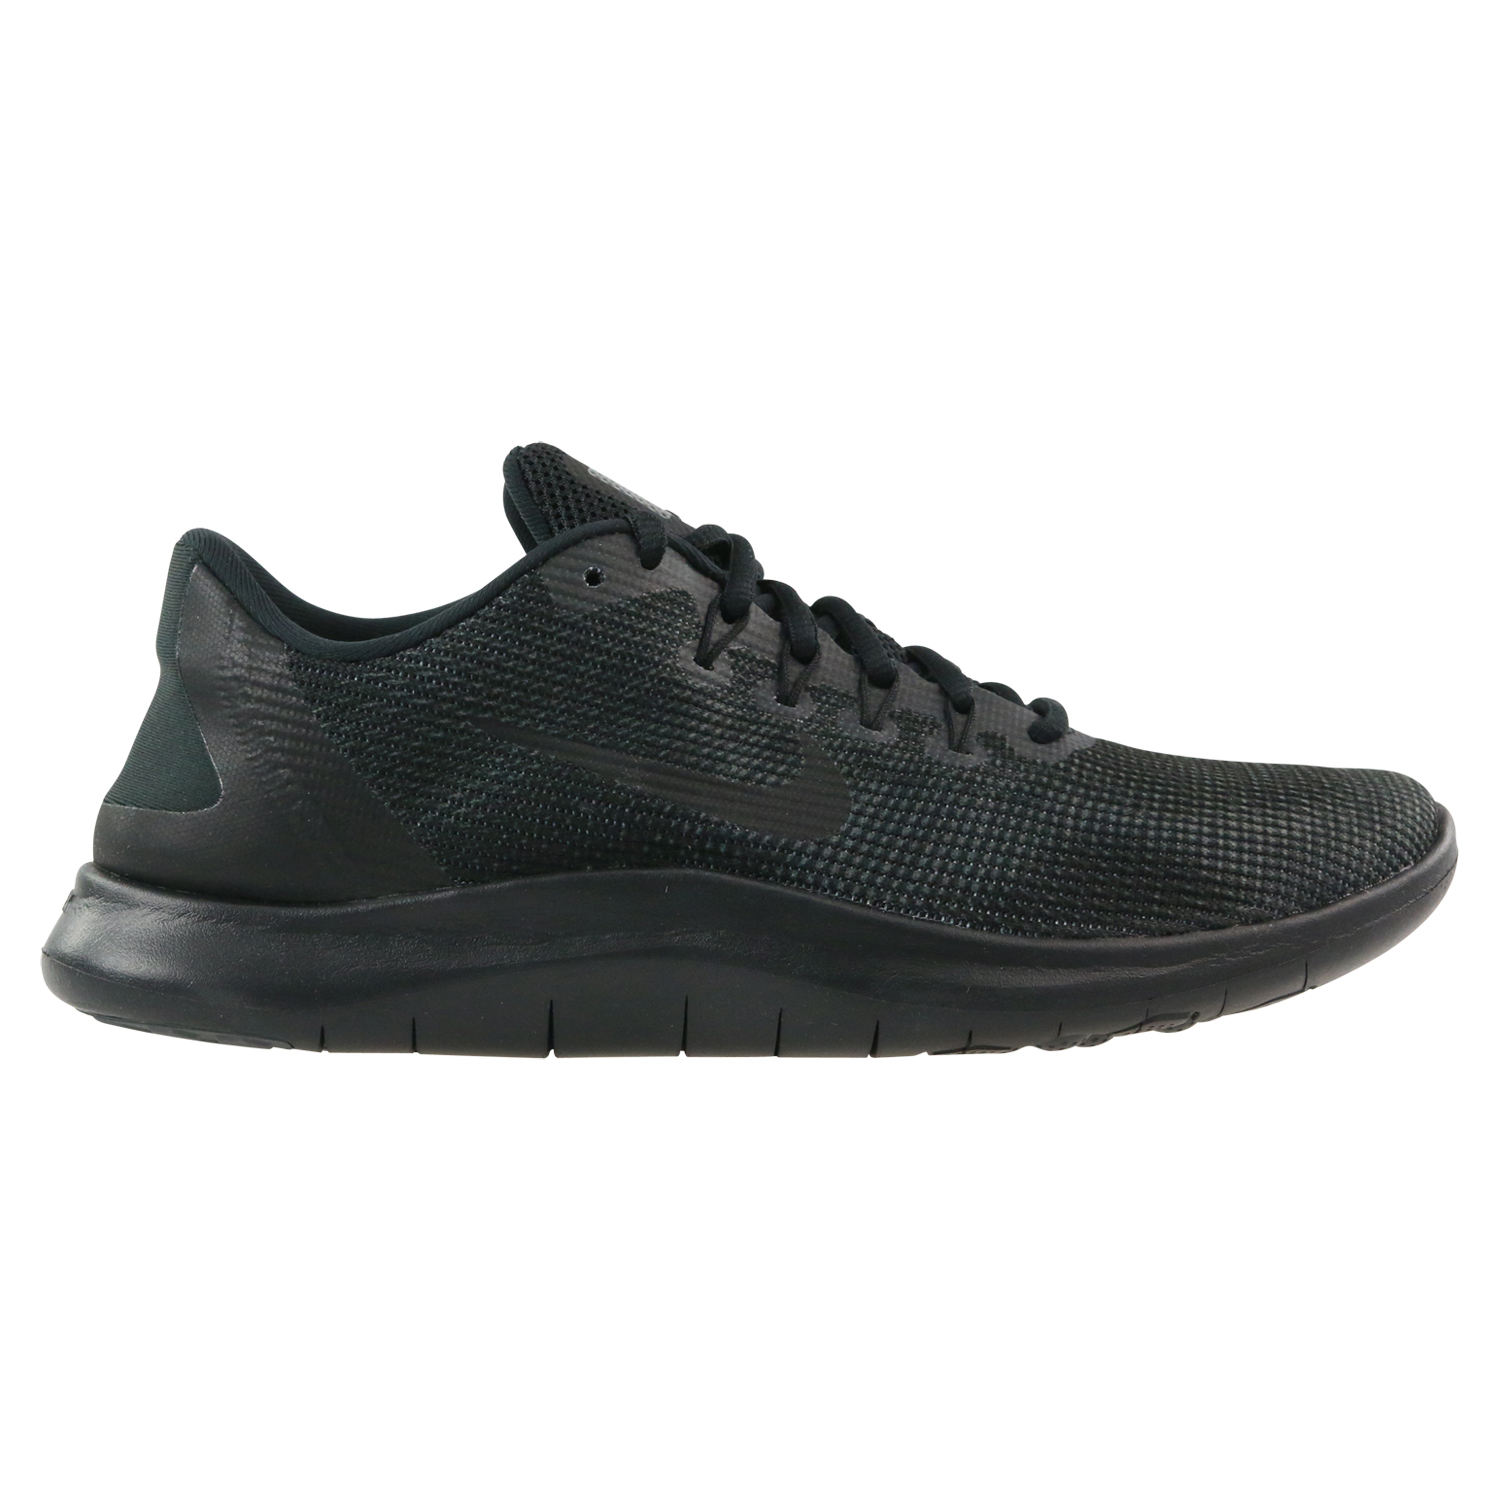 Details about Nike Flex 2018 RN Running Shoes Mens black FREE aa7397 002 show original title